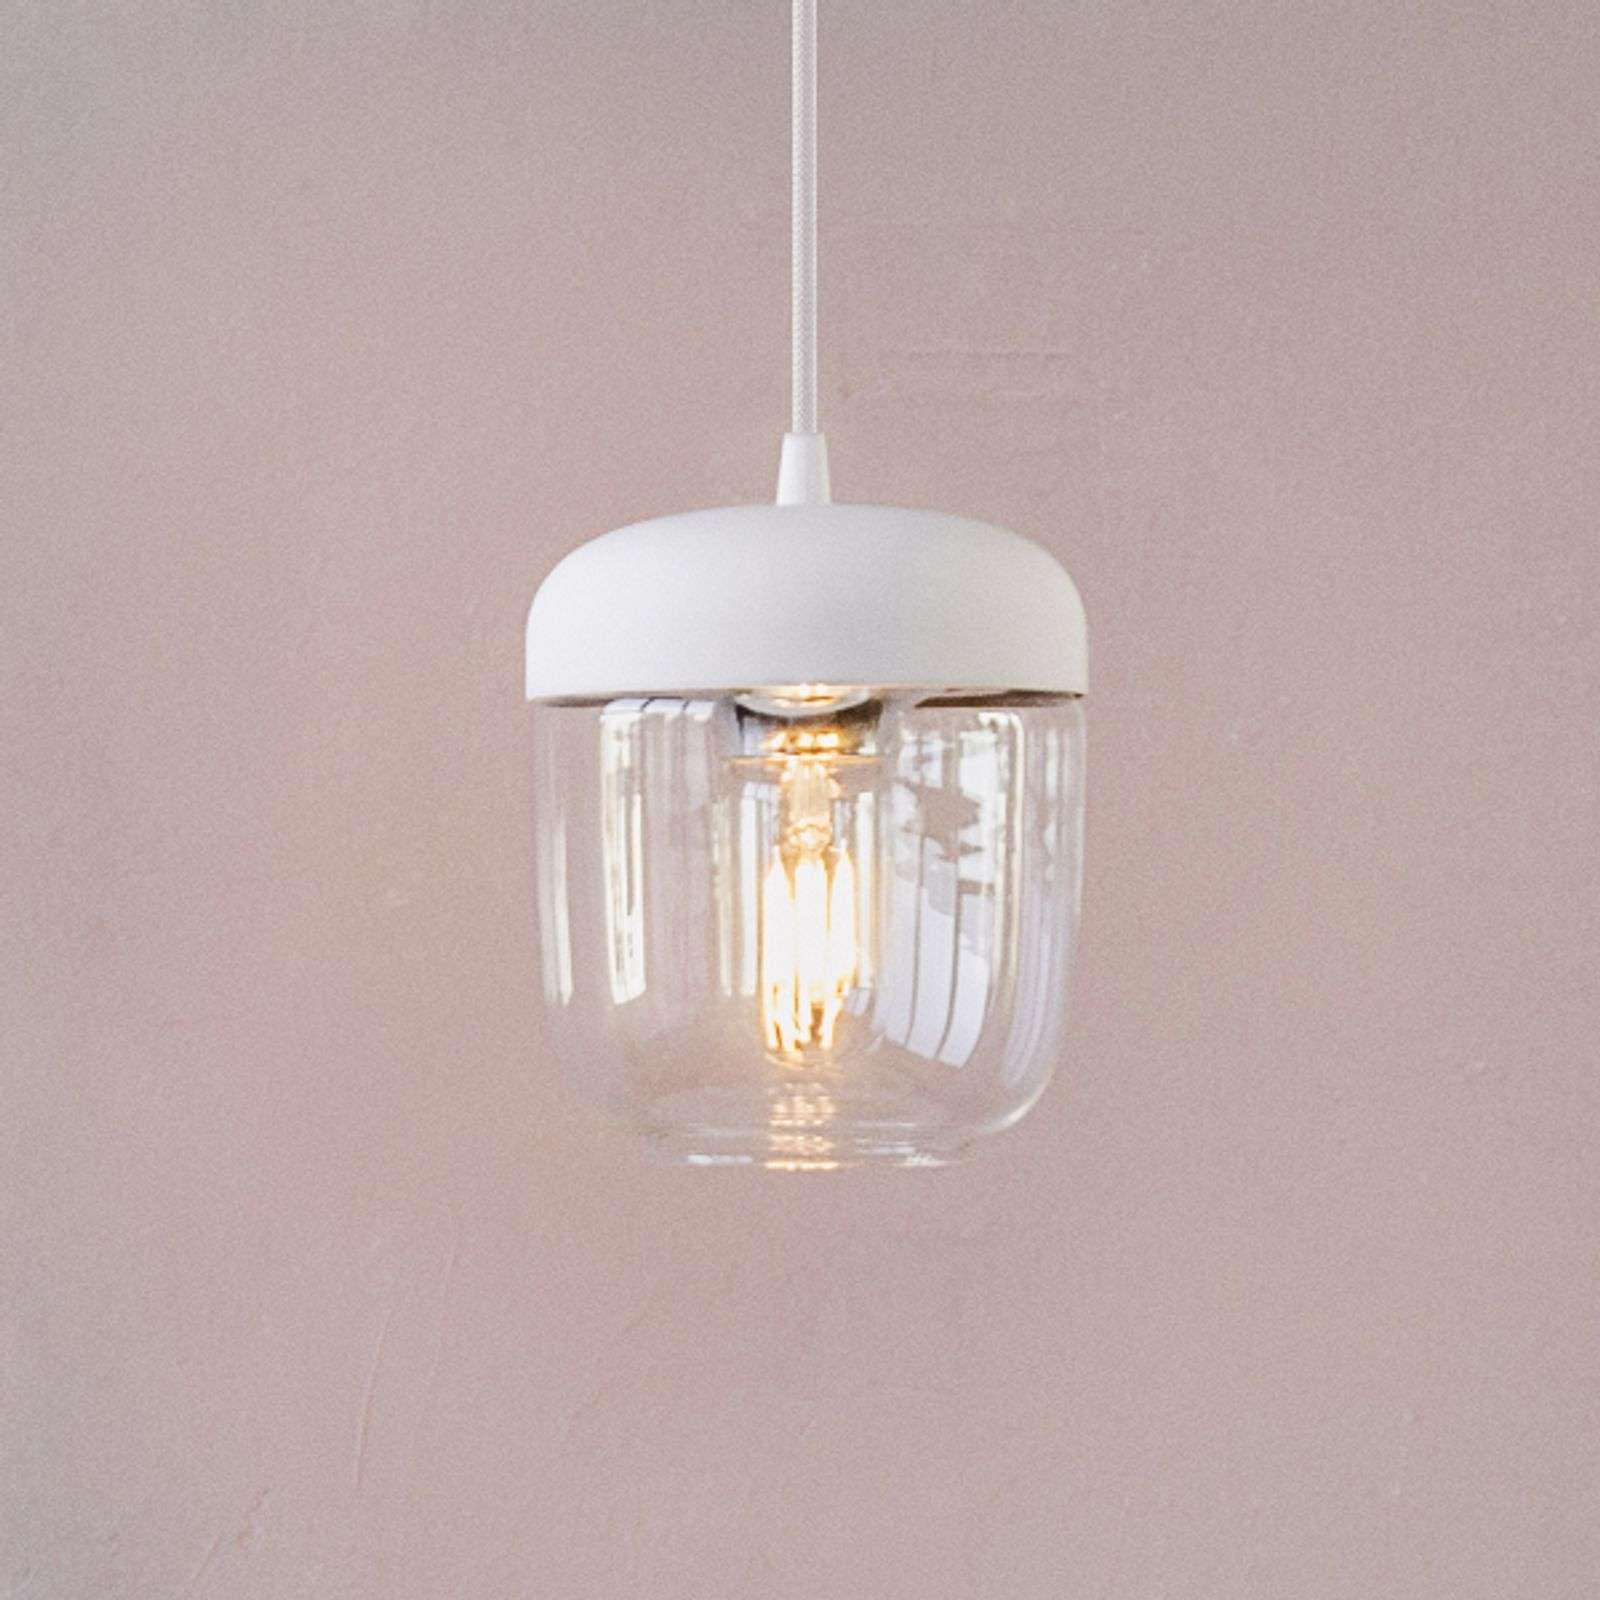 Suspension design Acorn, blanc et laiton